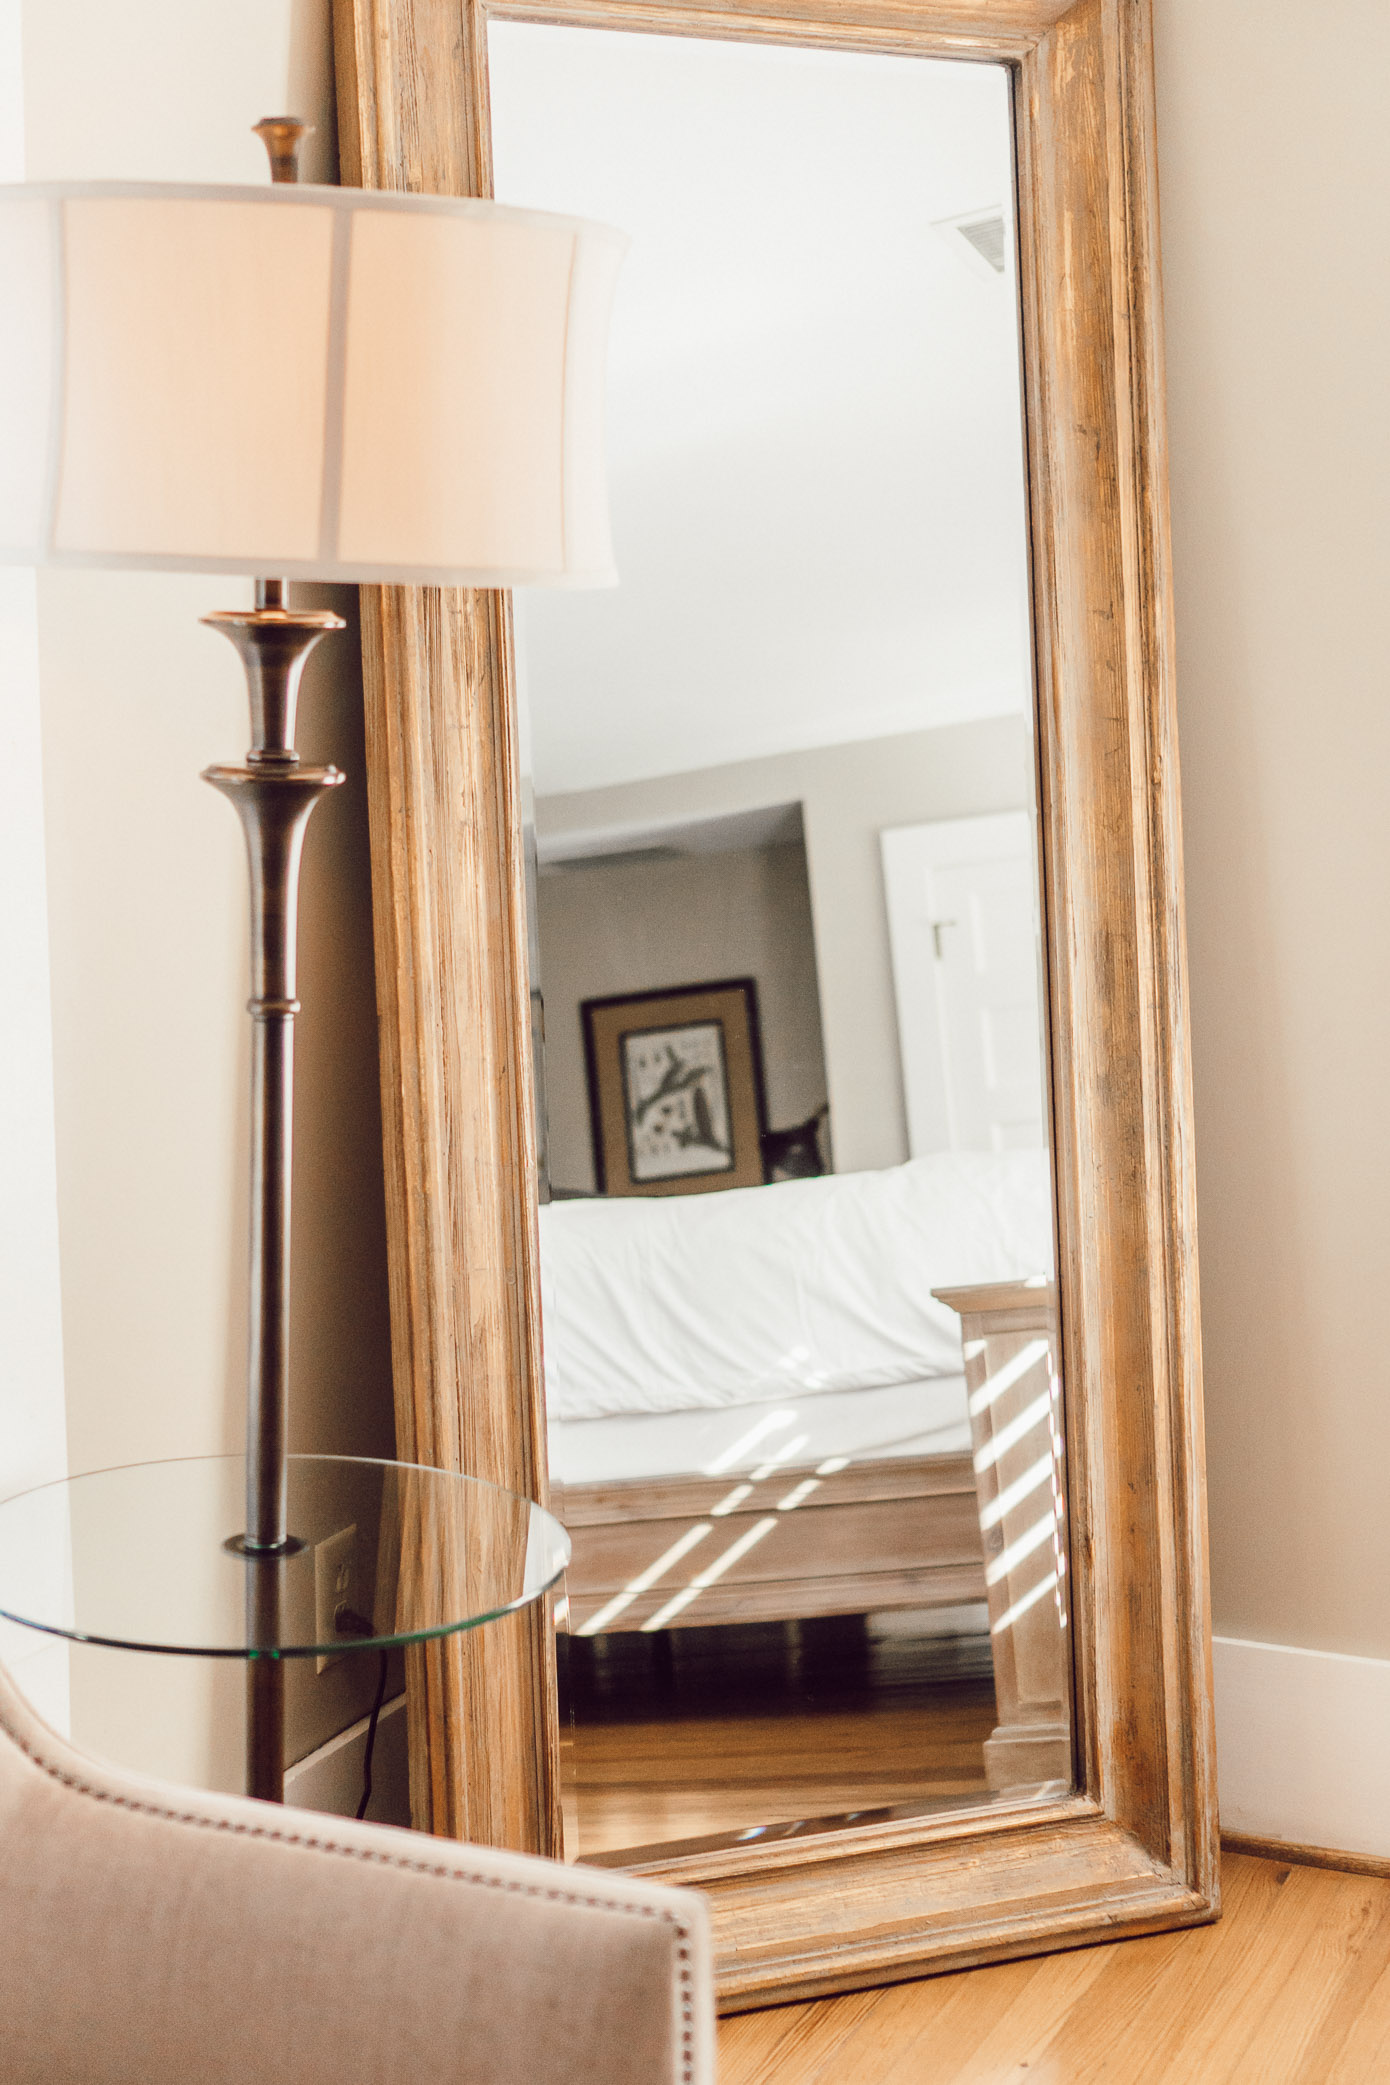 Gold Framed Floor Length Mirror | Blowing Rock Bed and Breakfast: The New Public House featured by popular North Carolina travel blogger Laura Leigh of Louella Reese